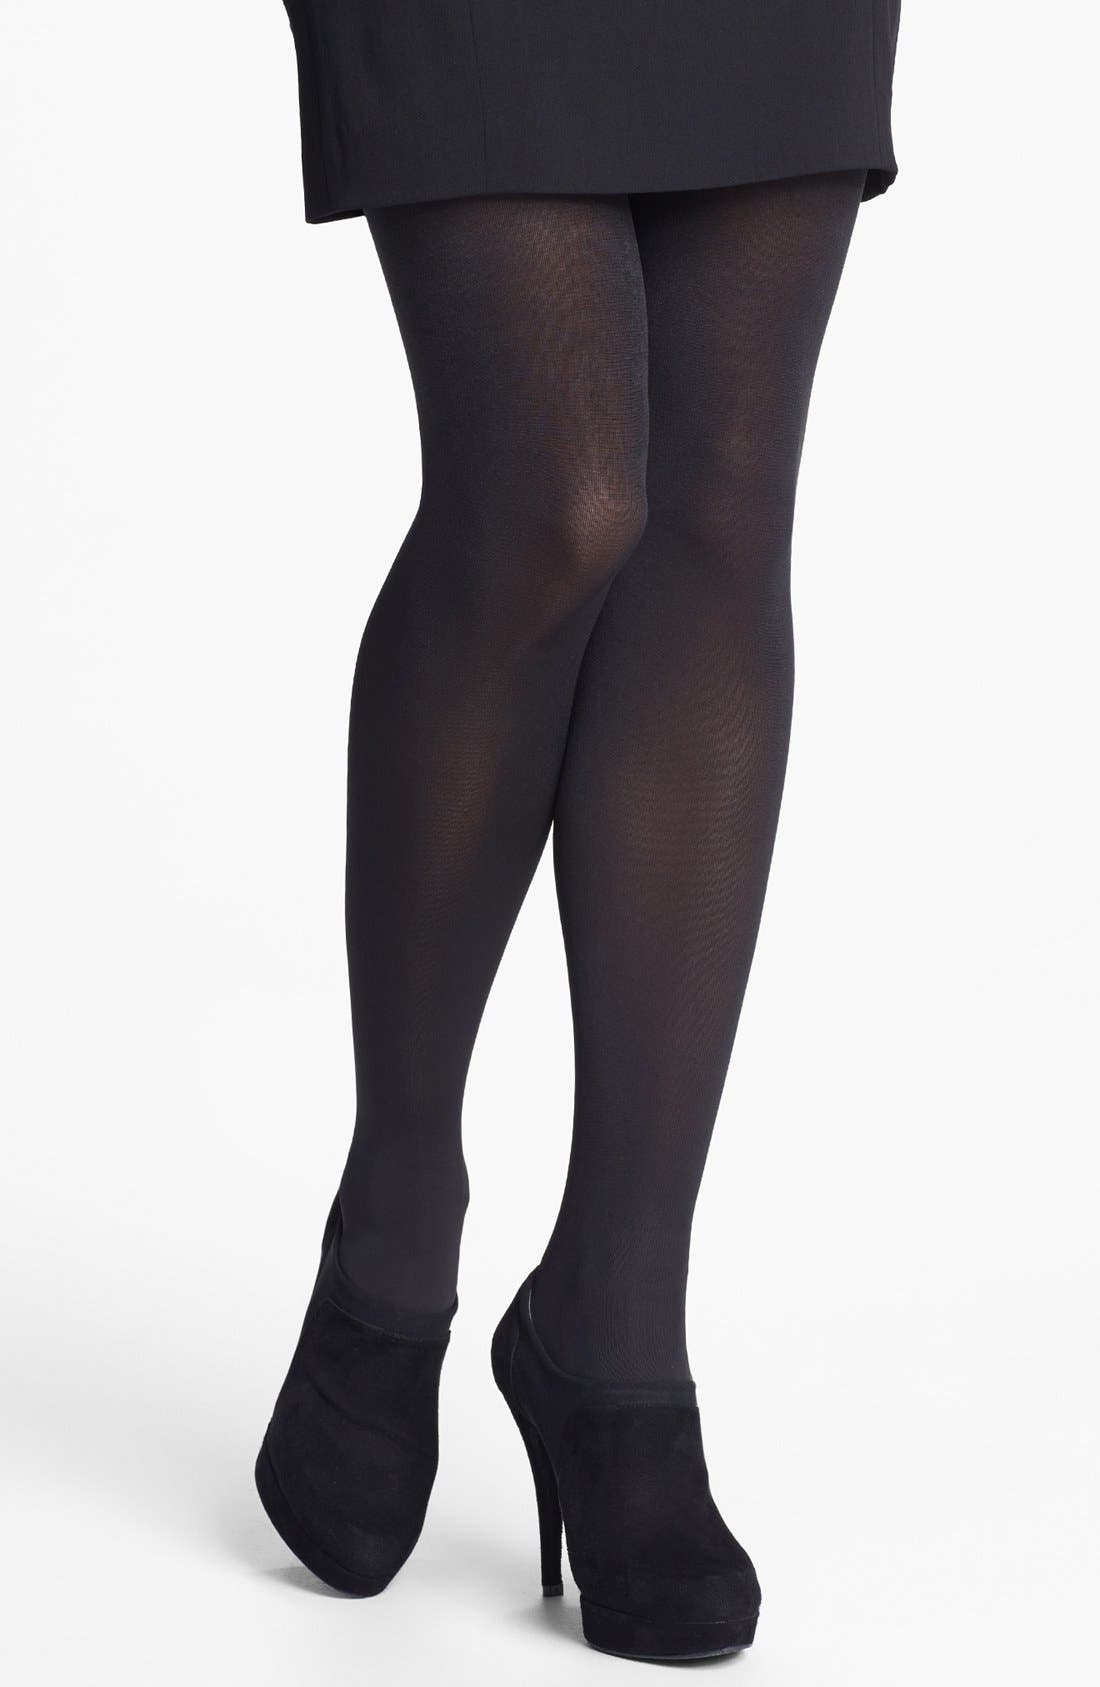 Donna Karan 'Evolution' Satin Jersey Tights,                             Alternate thumbnail 2, color,                             003